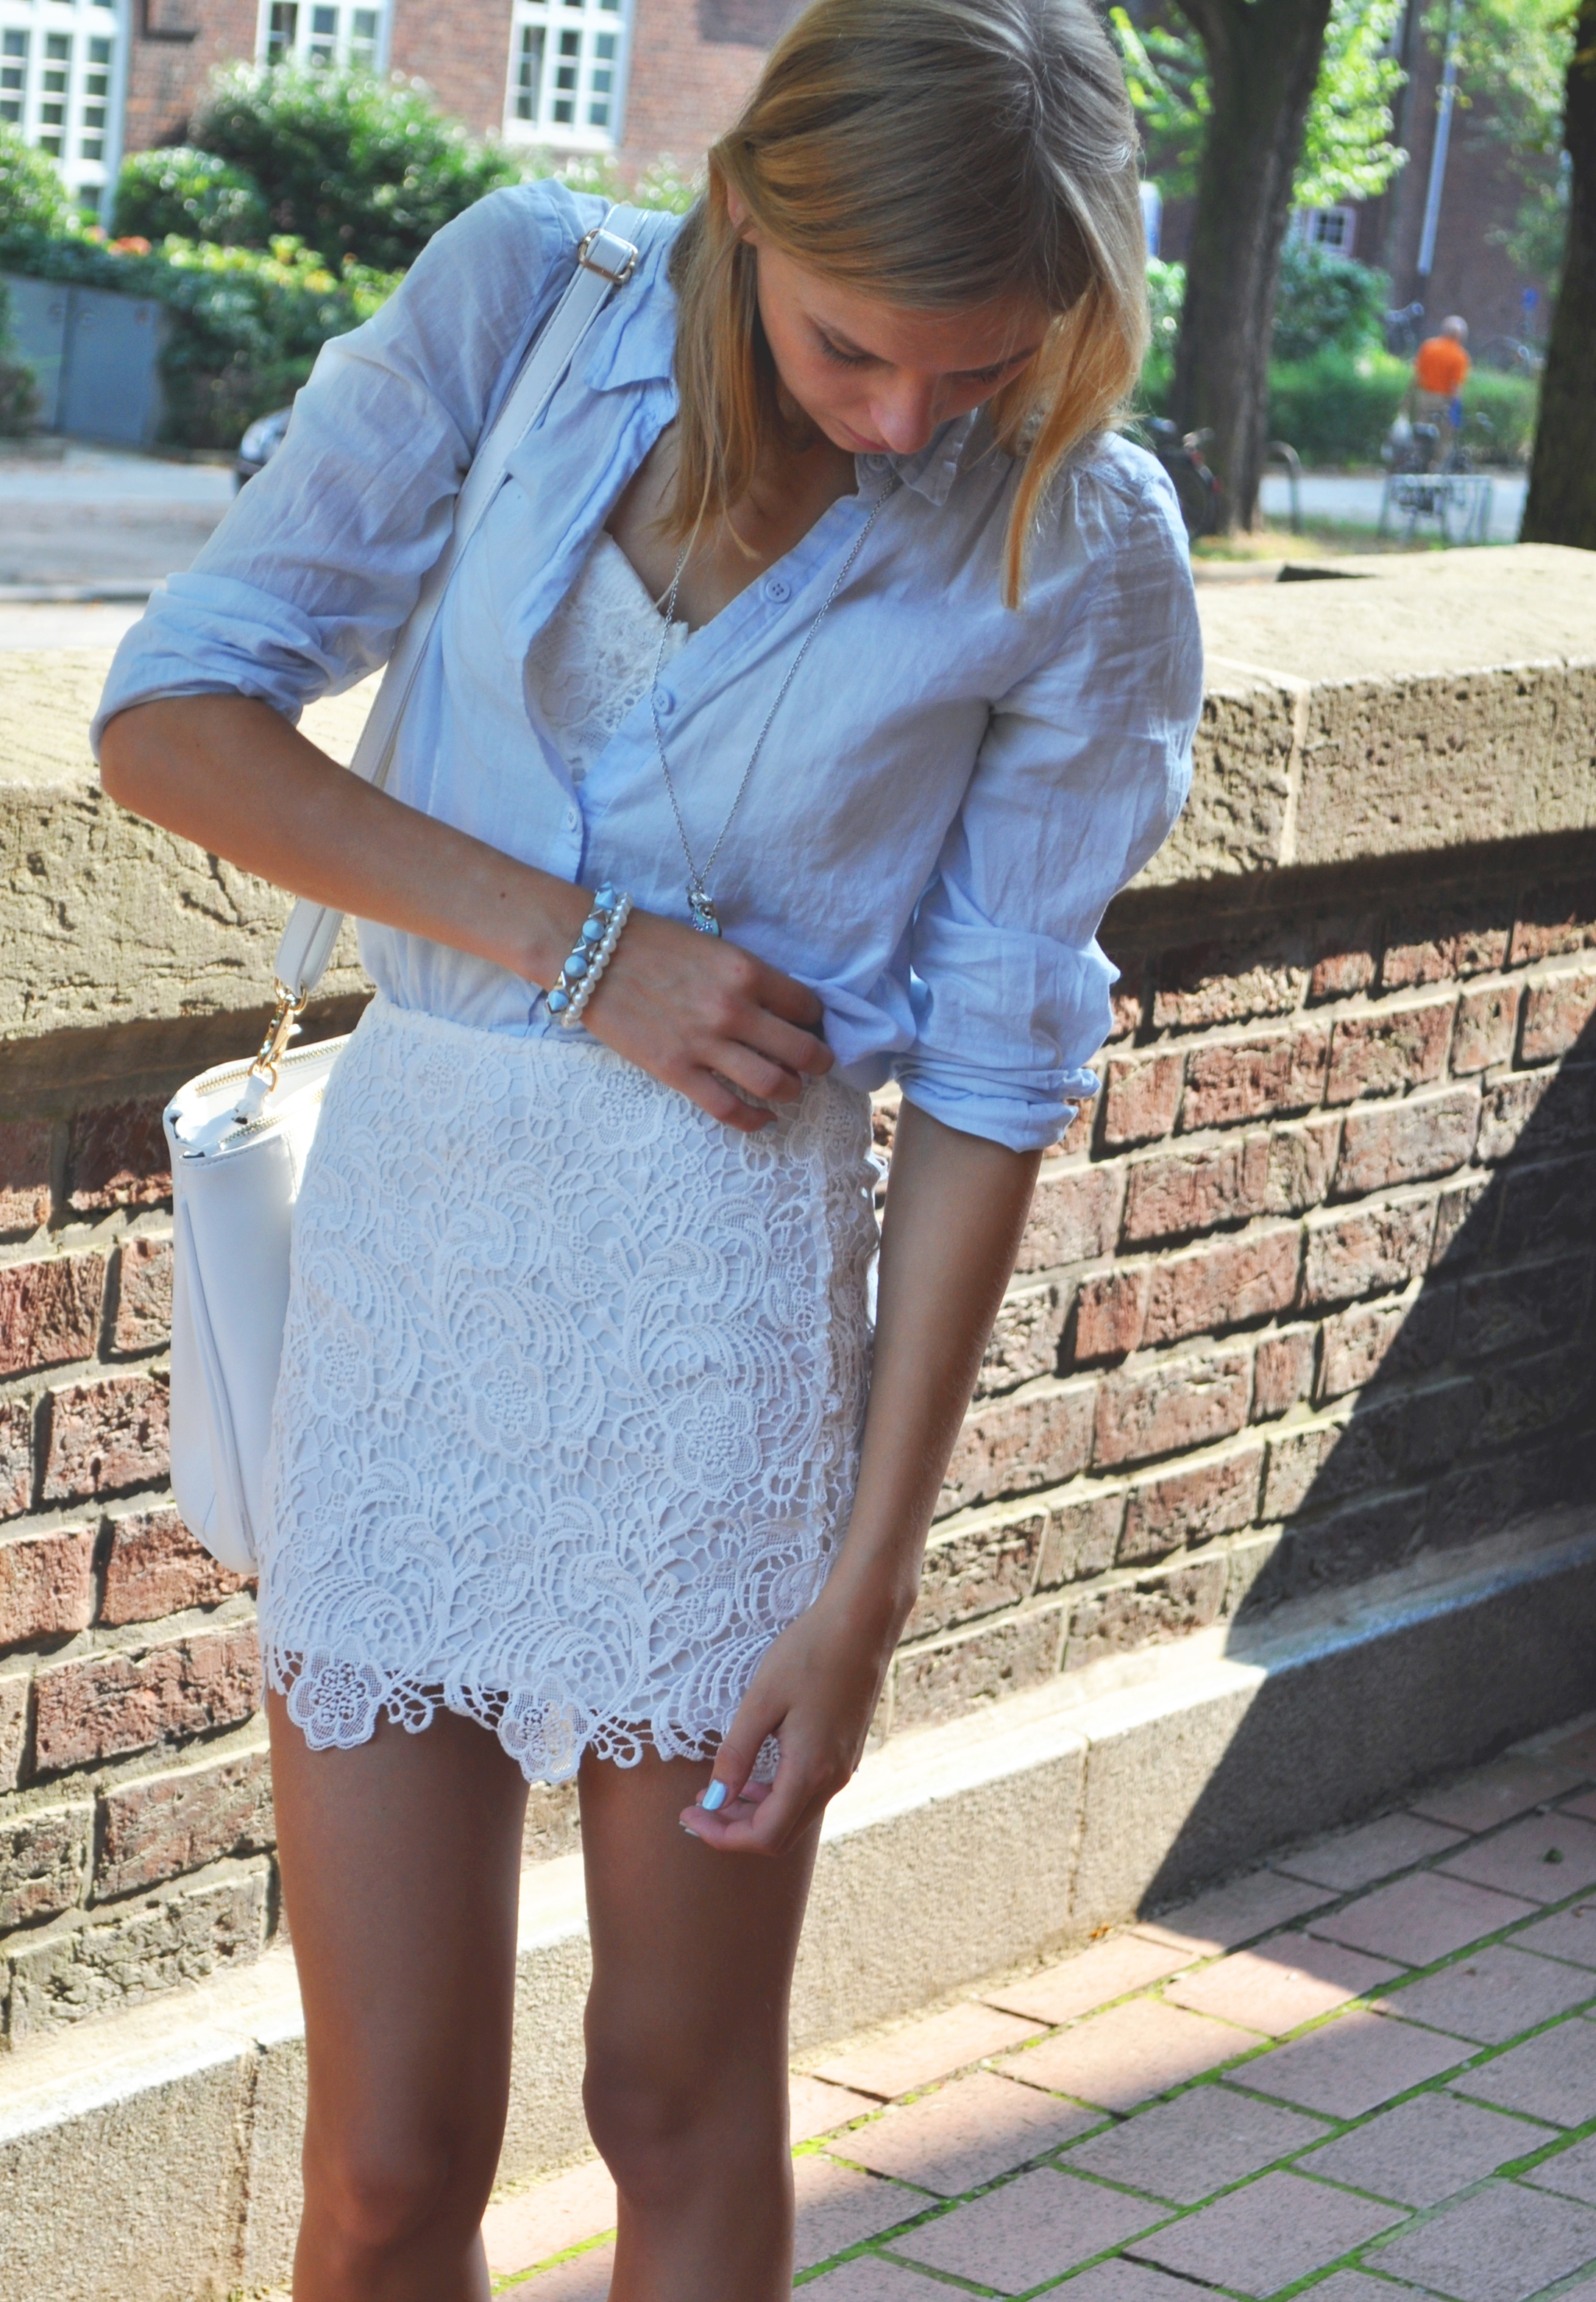 OUTFIT | Spitzenrock & Blaue Bluse